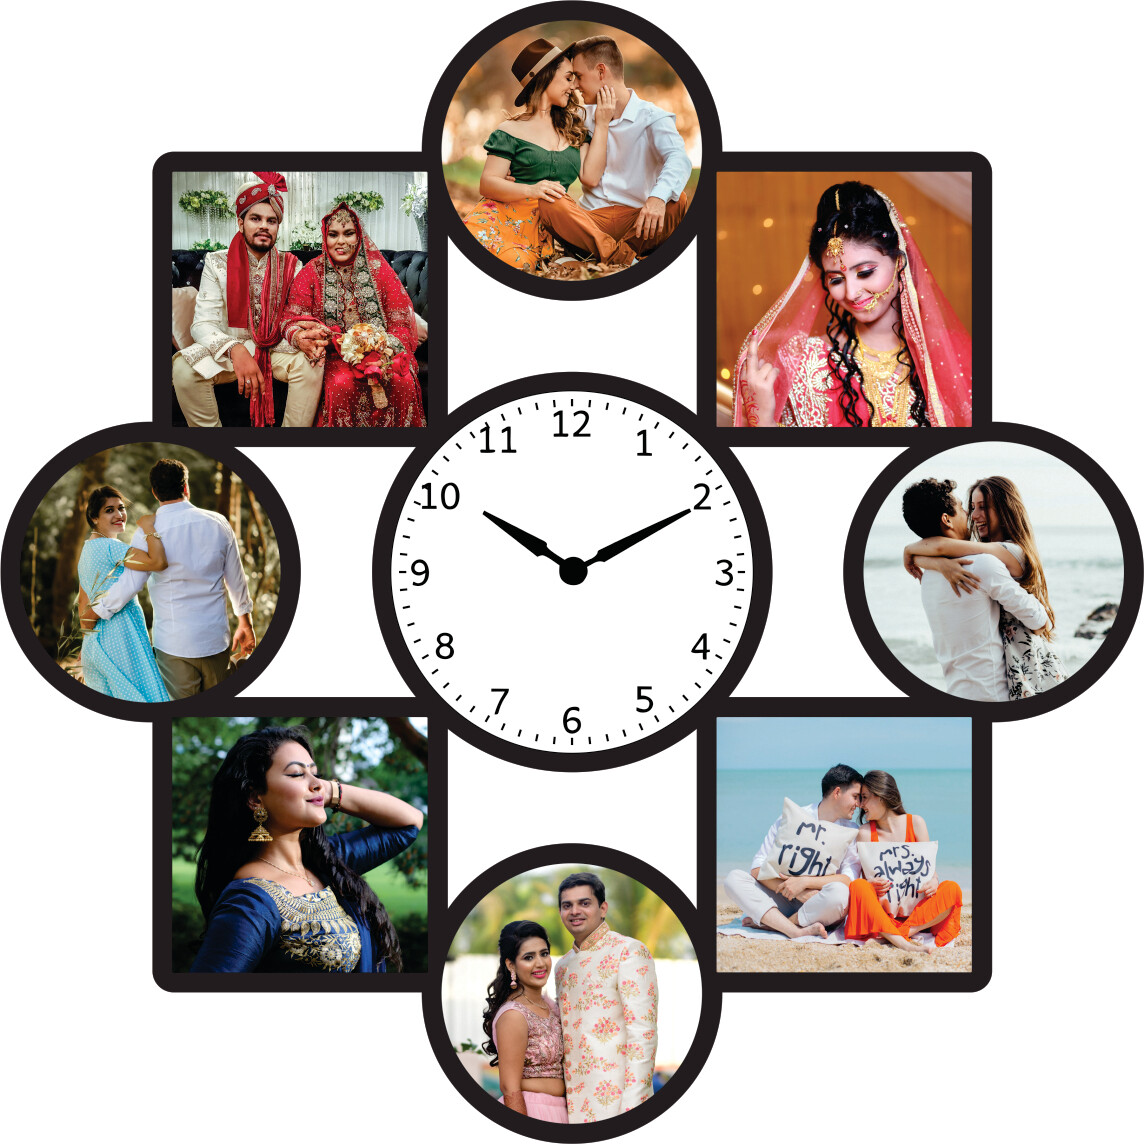 Wall Clock With Photo Collage (MT 20030)